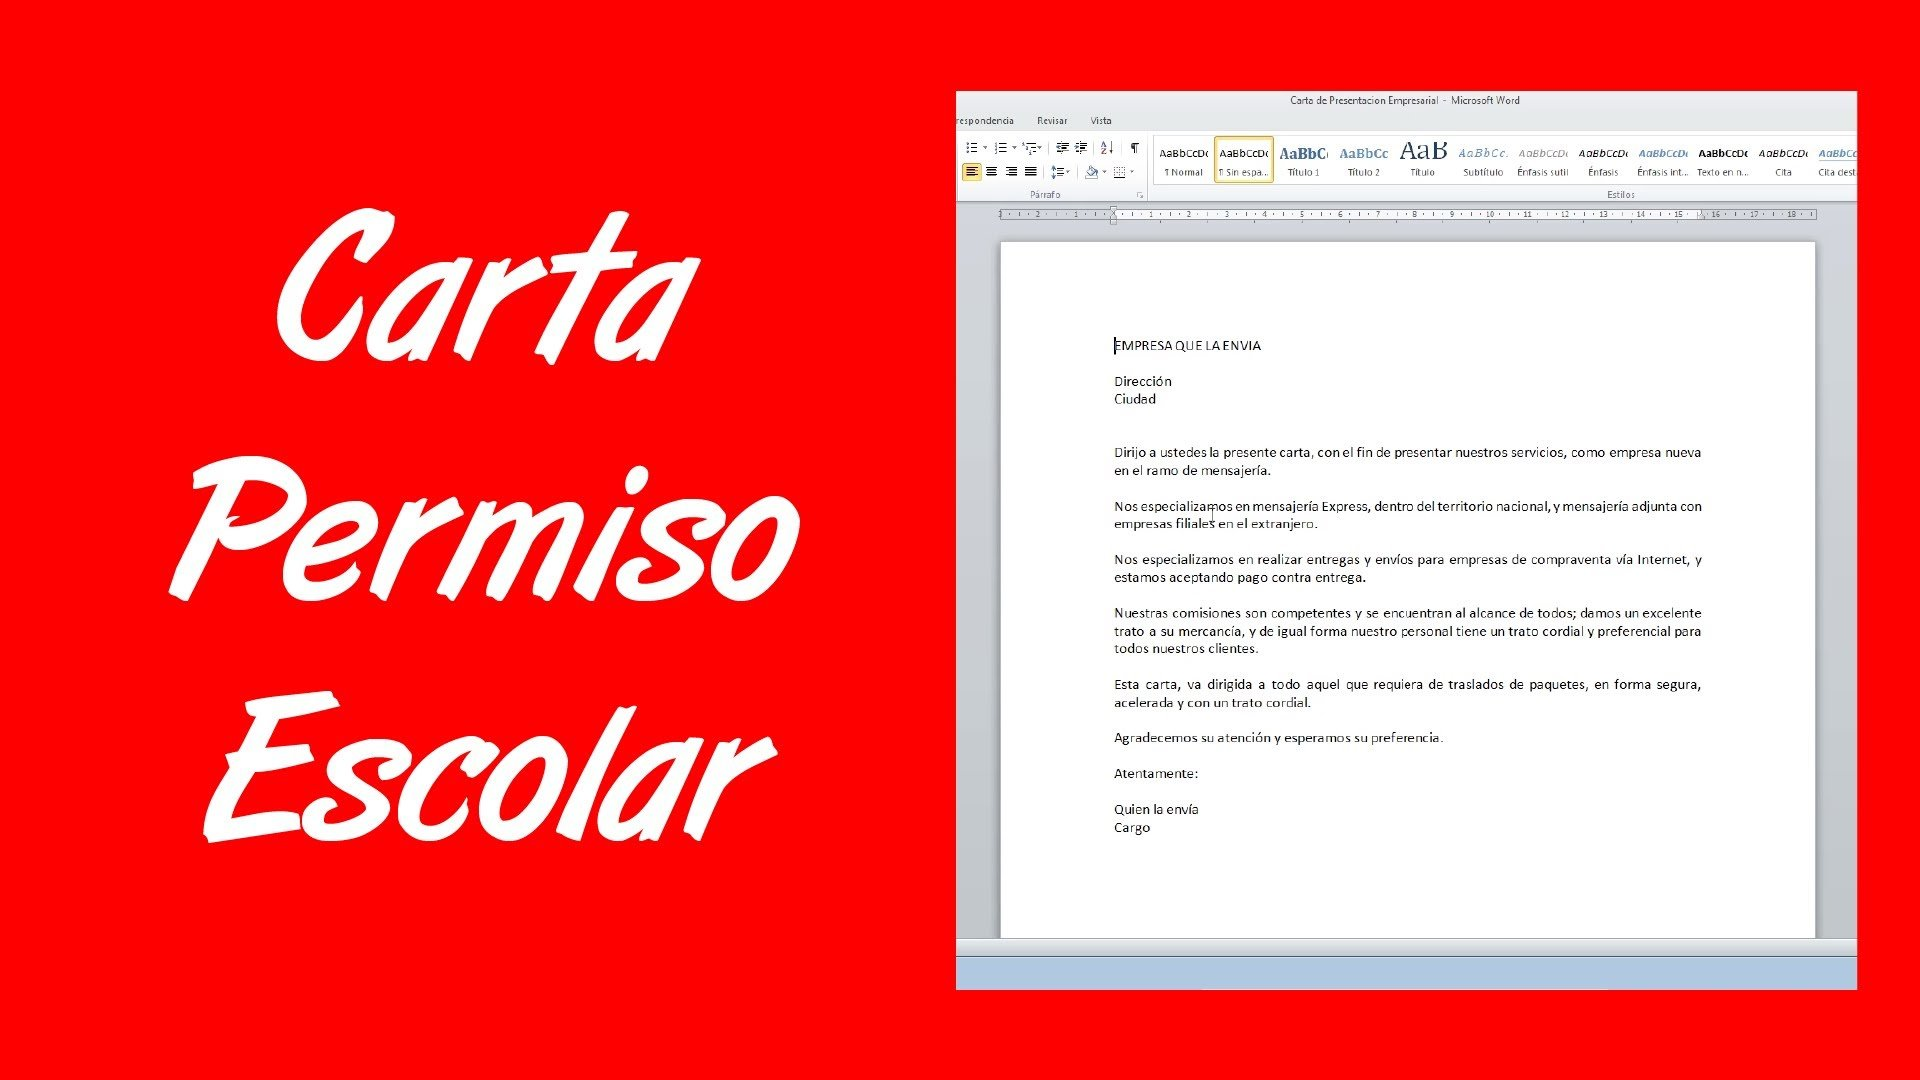 Ejemplo de carta formal escolar 3